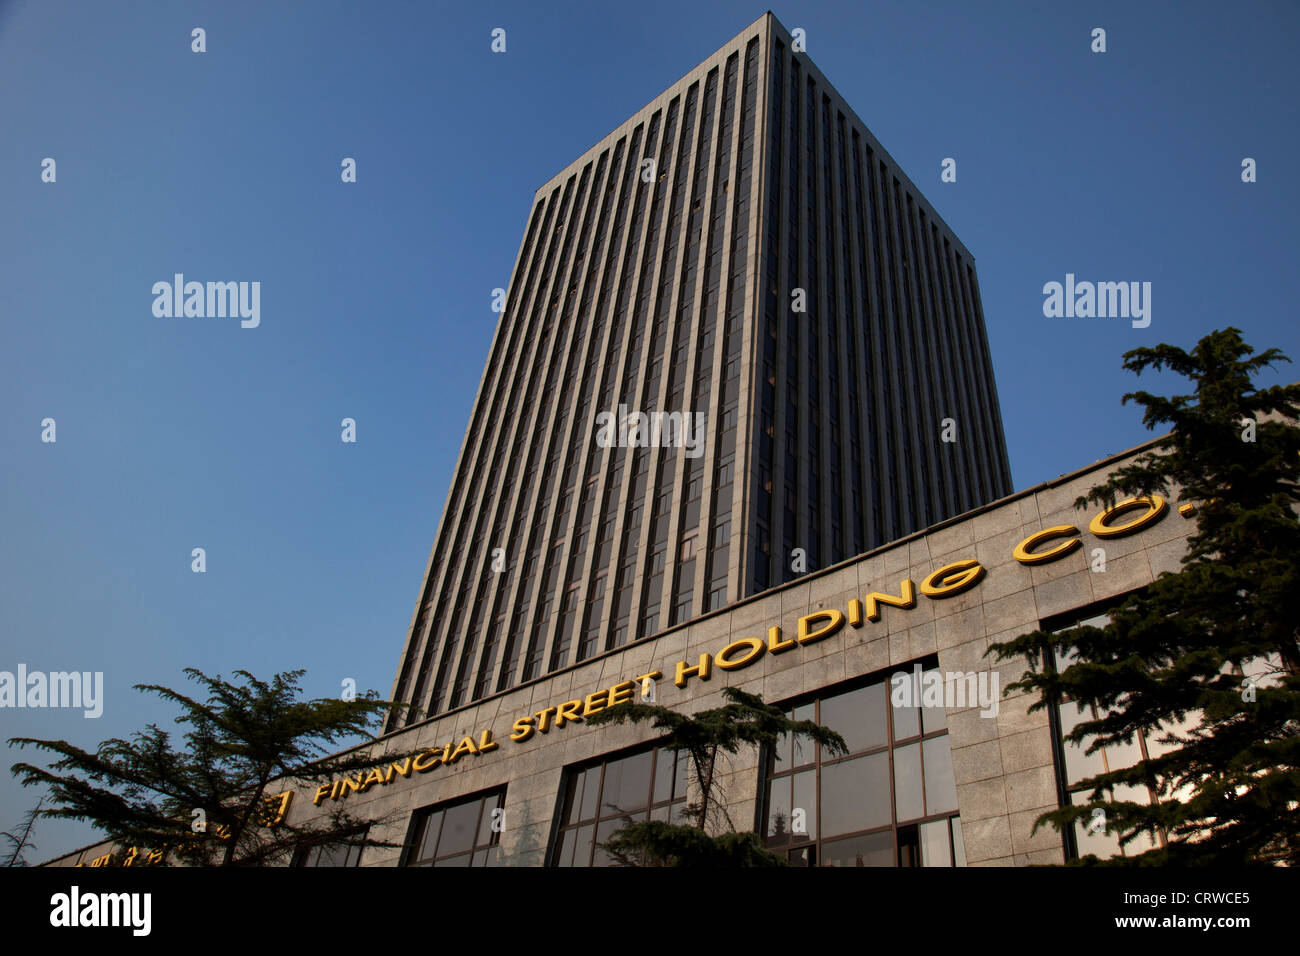 Financial Street Holding Company. Banks and banking institutions along Financial Street, Beijing, China. - Stock Image